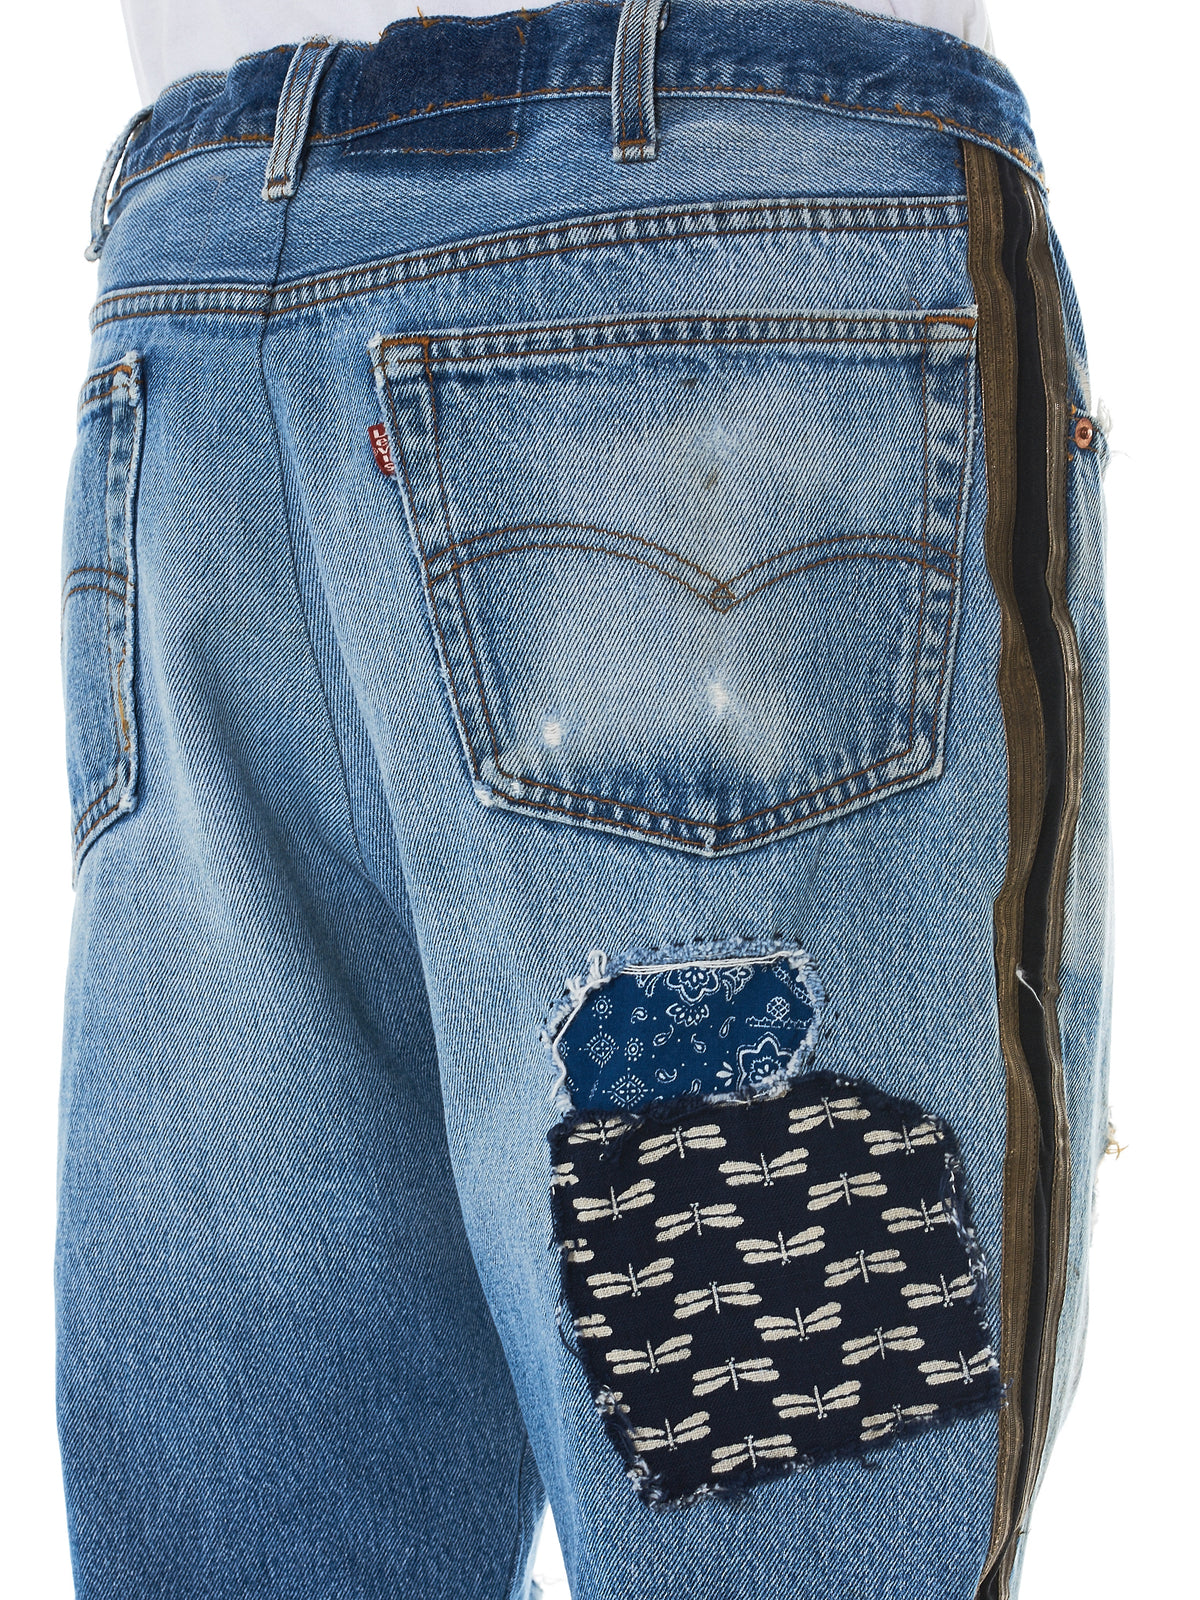 Greg Lauren Denim Patchwork - HLorenzo patchwork detail